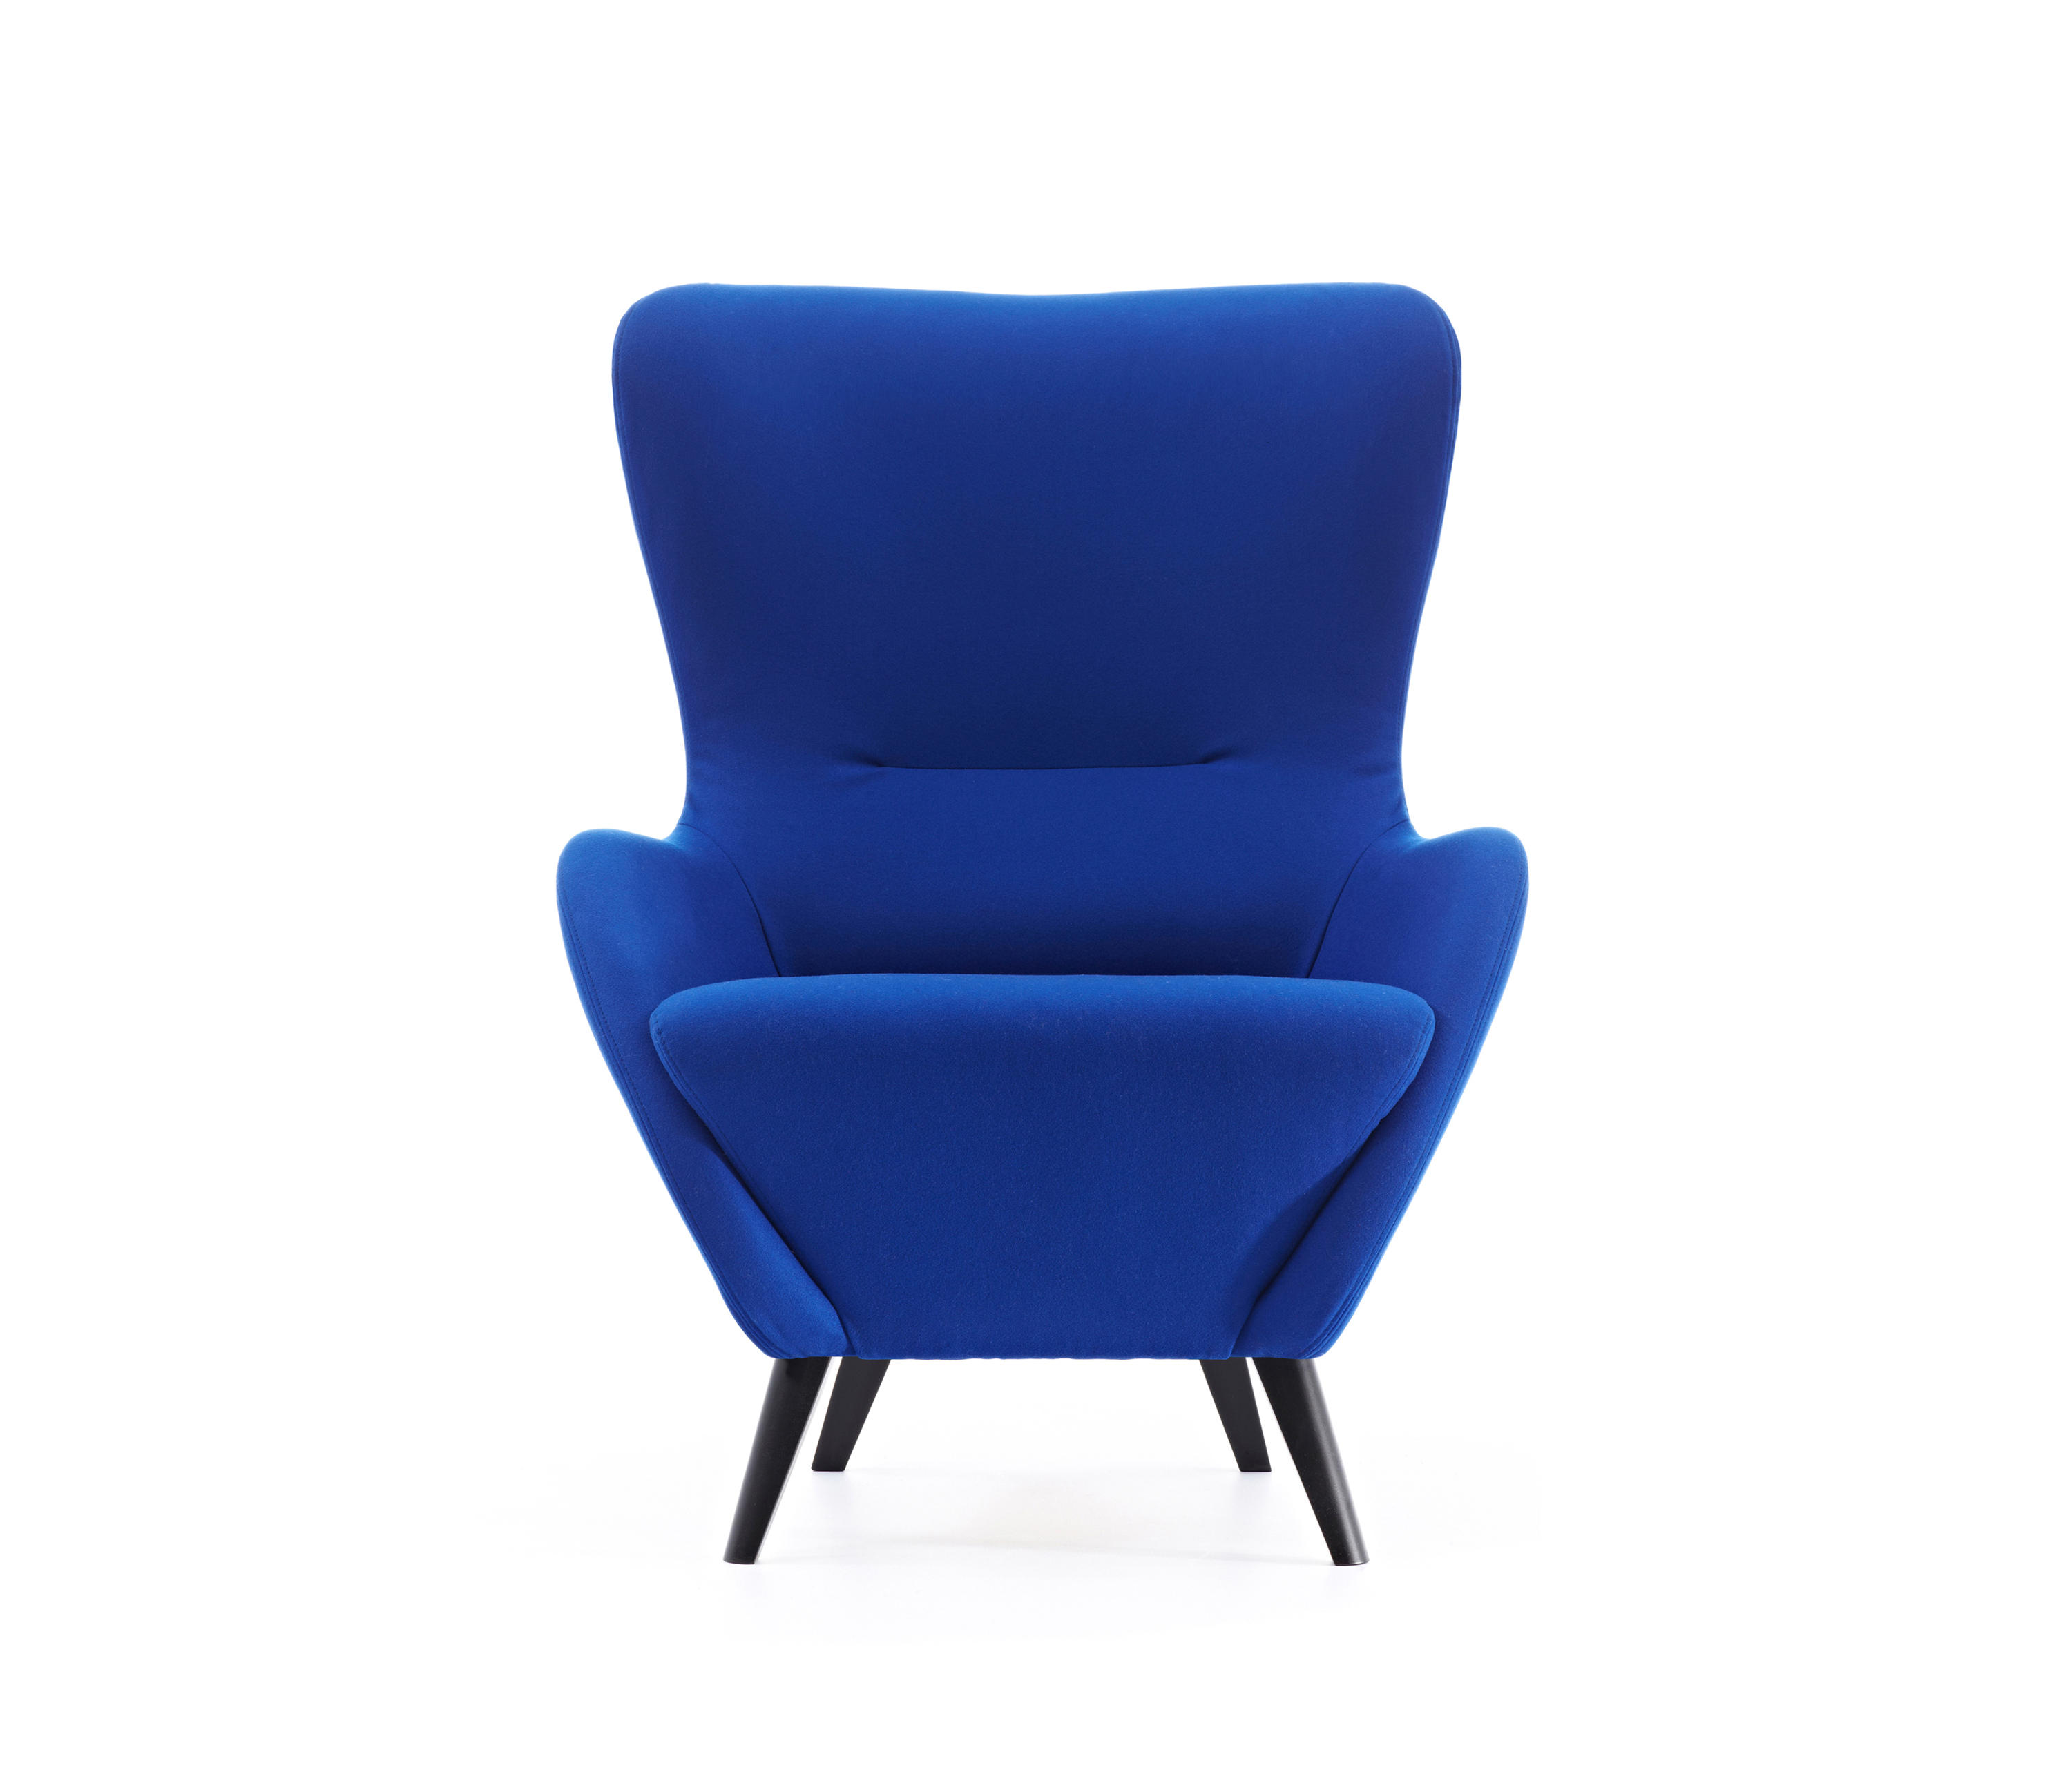 EARL Lounge chairs from Durlet